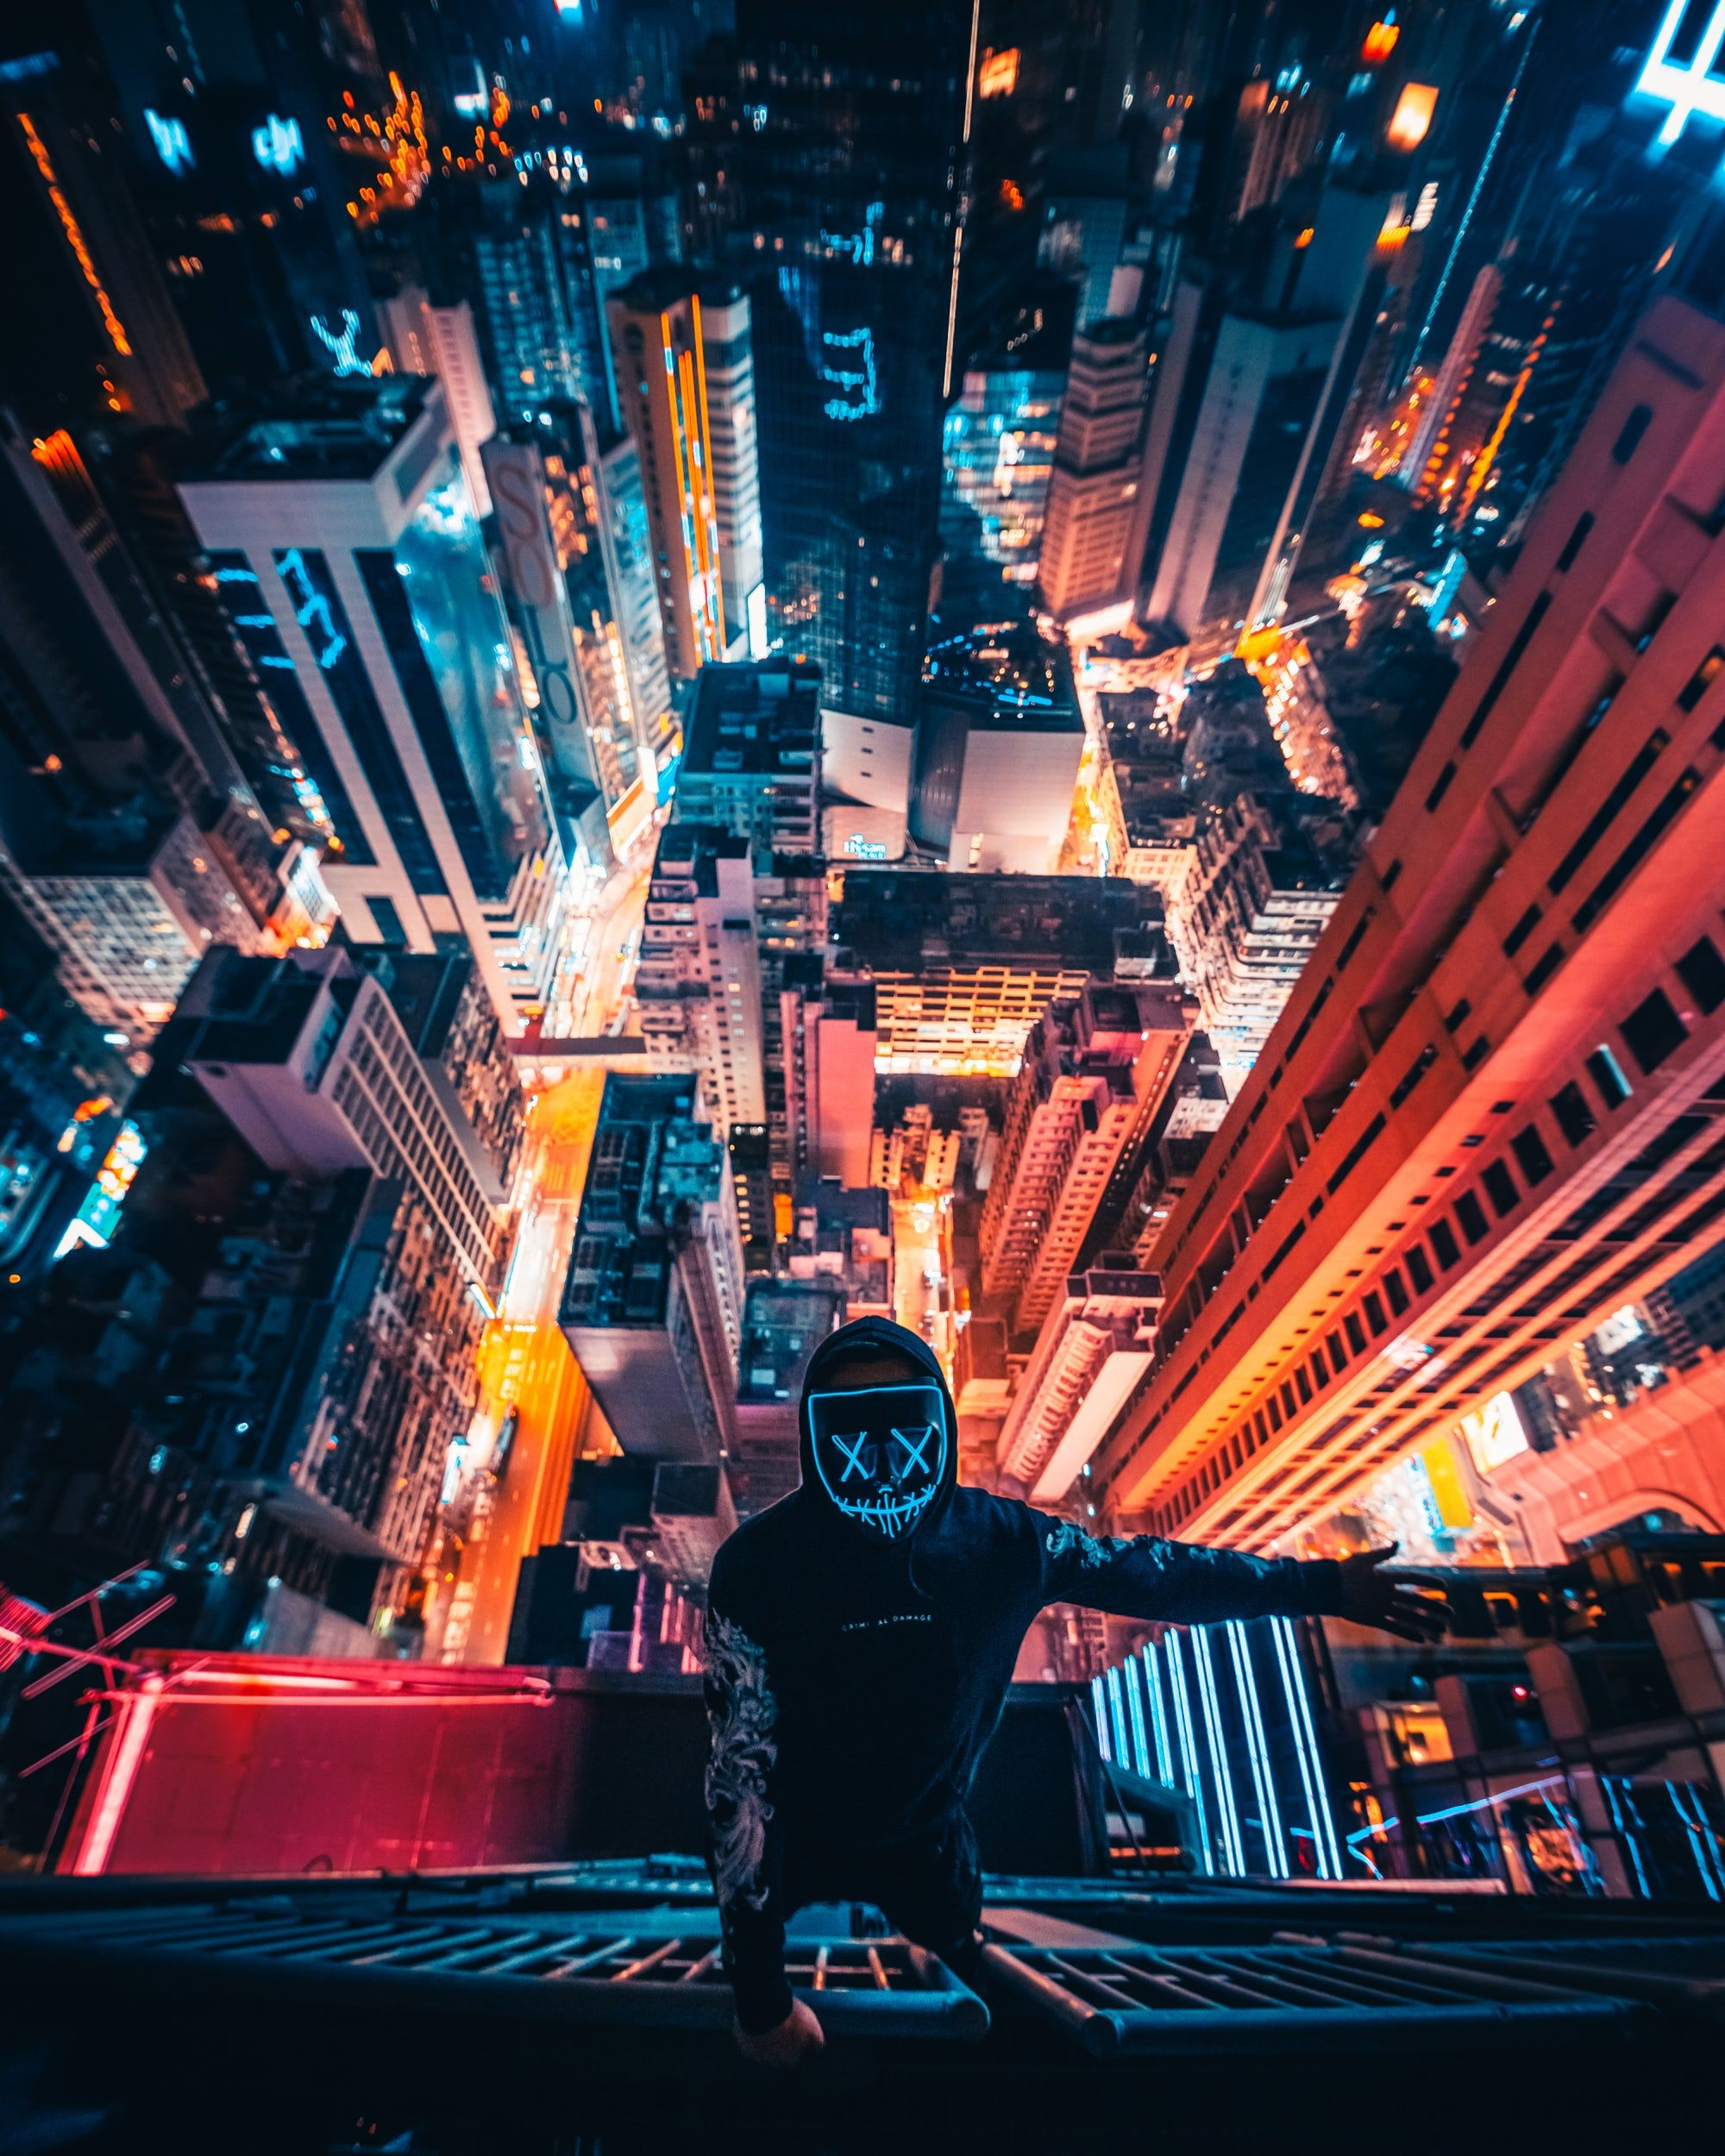 Thanks To Simon Zhu For Making This Photo Available Freely On Unsplash Sunset Wallpaper Eyes Wallpaper City Wallpaper